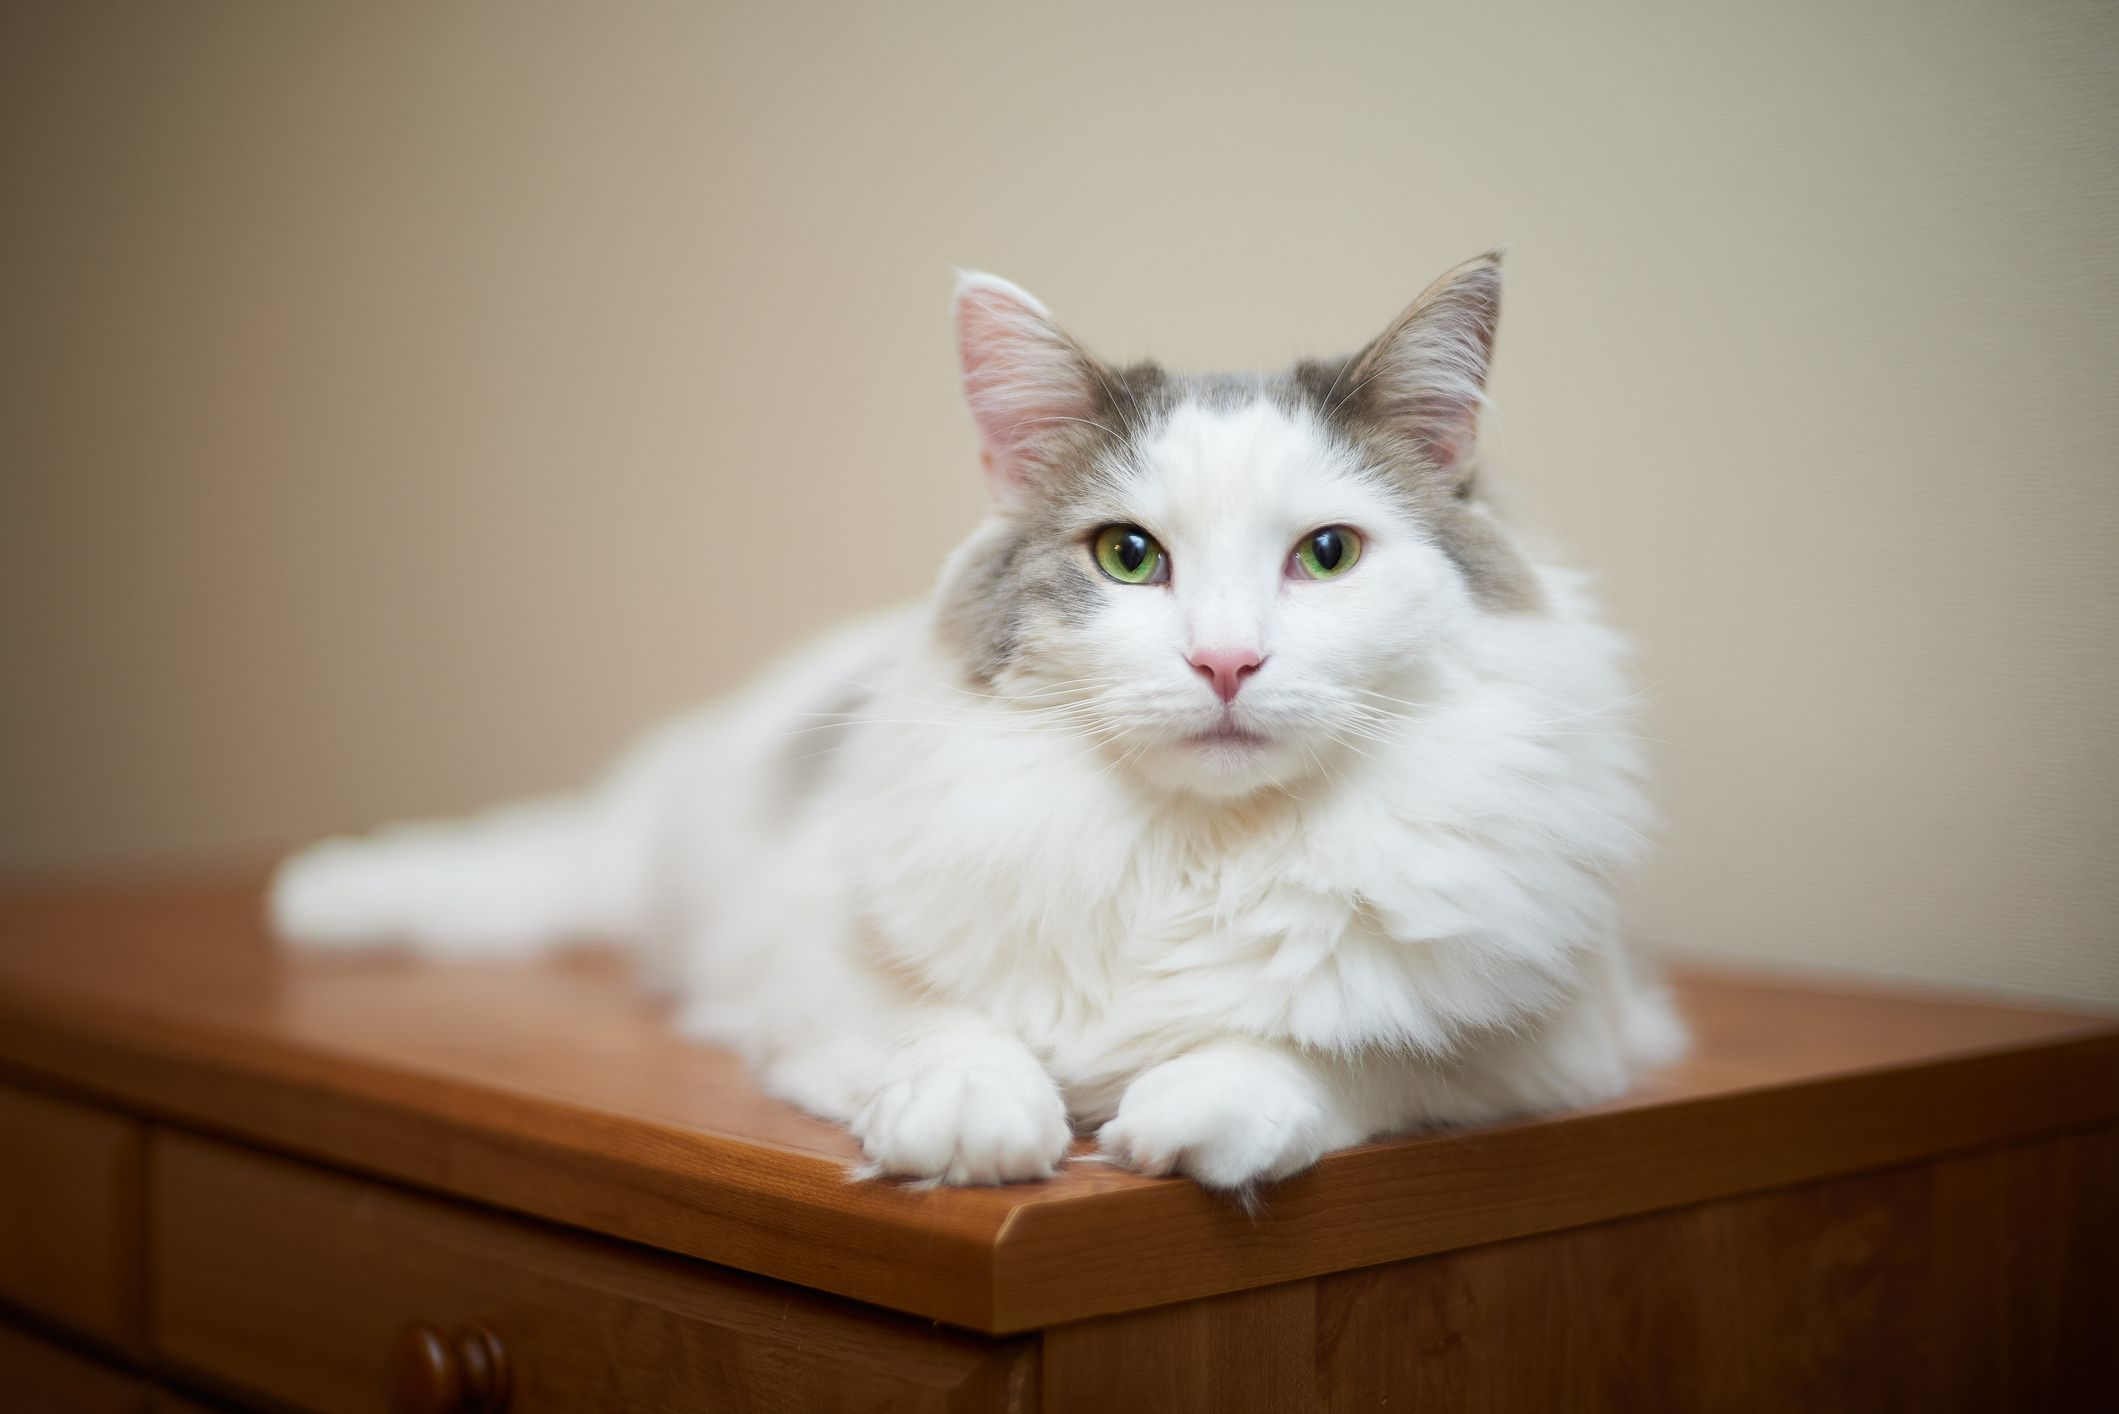 A white cat with long hair and green eyes sitting on a wood dresser and looking at the camera.